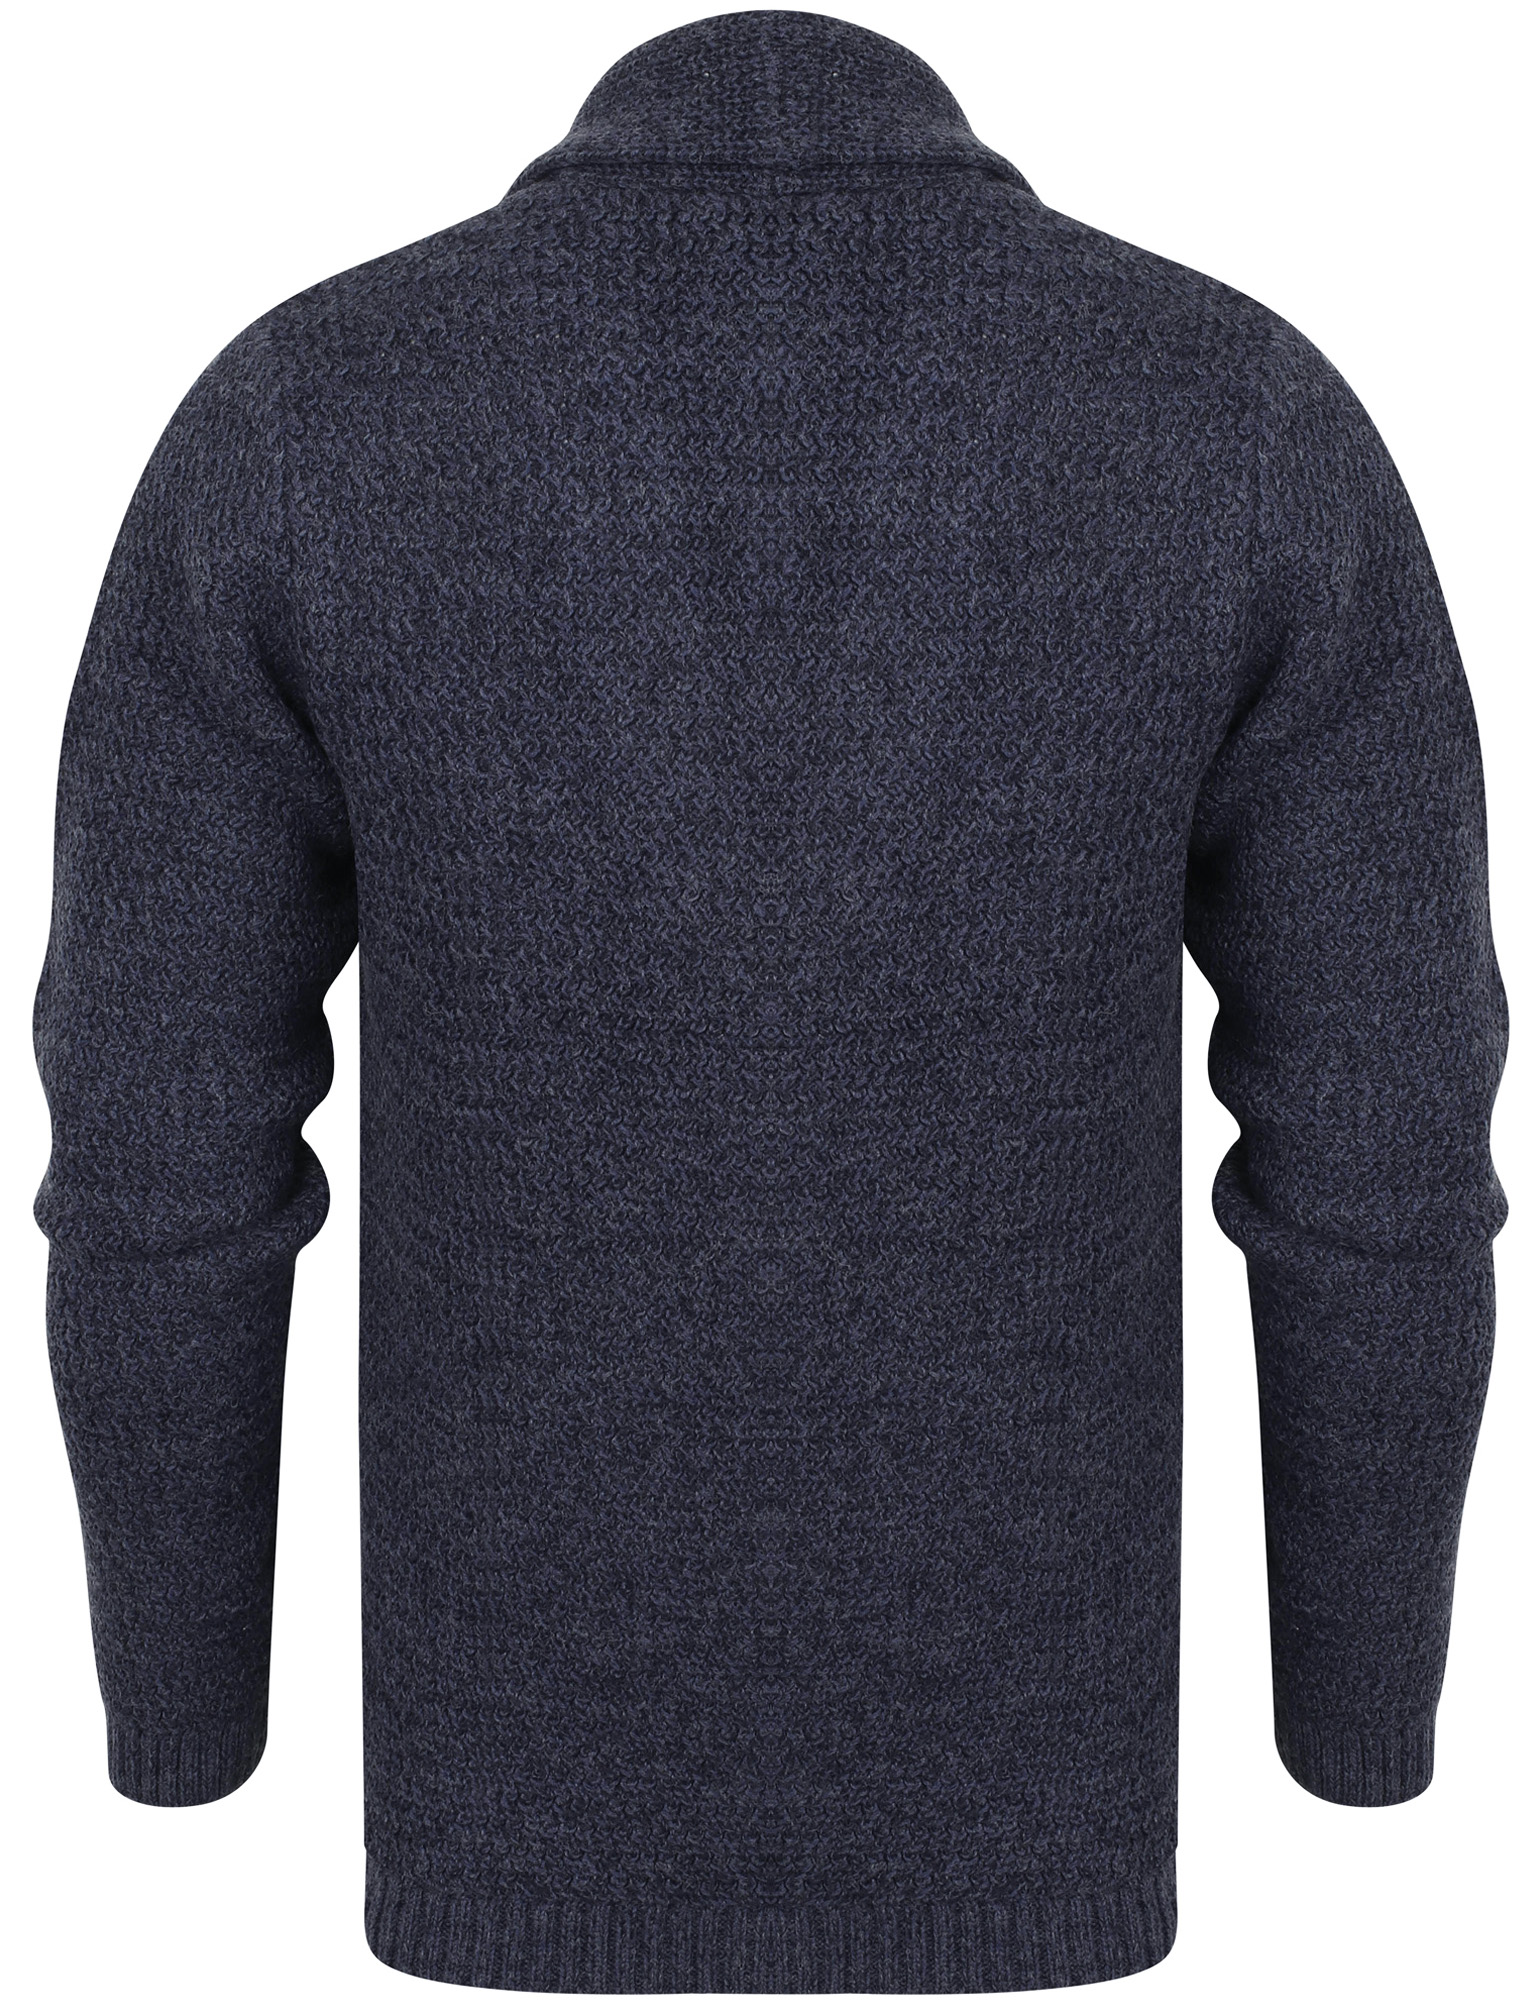 New-Mens-Tokyo-Laundry-Shawl-Neck-Long-Sleeve-Wool-Blend-Cardigans-Size-S-XXL thumbnail 24